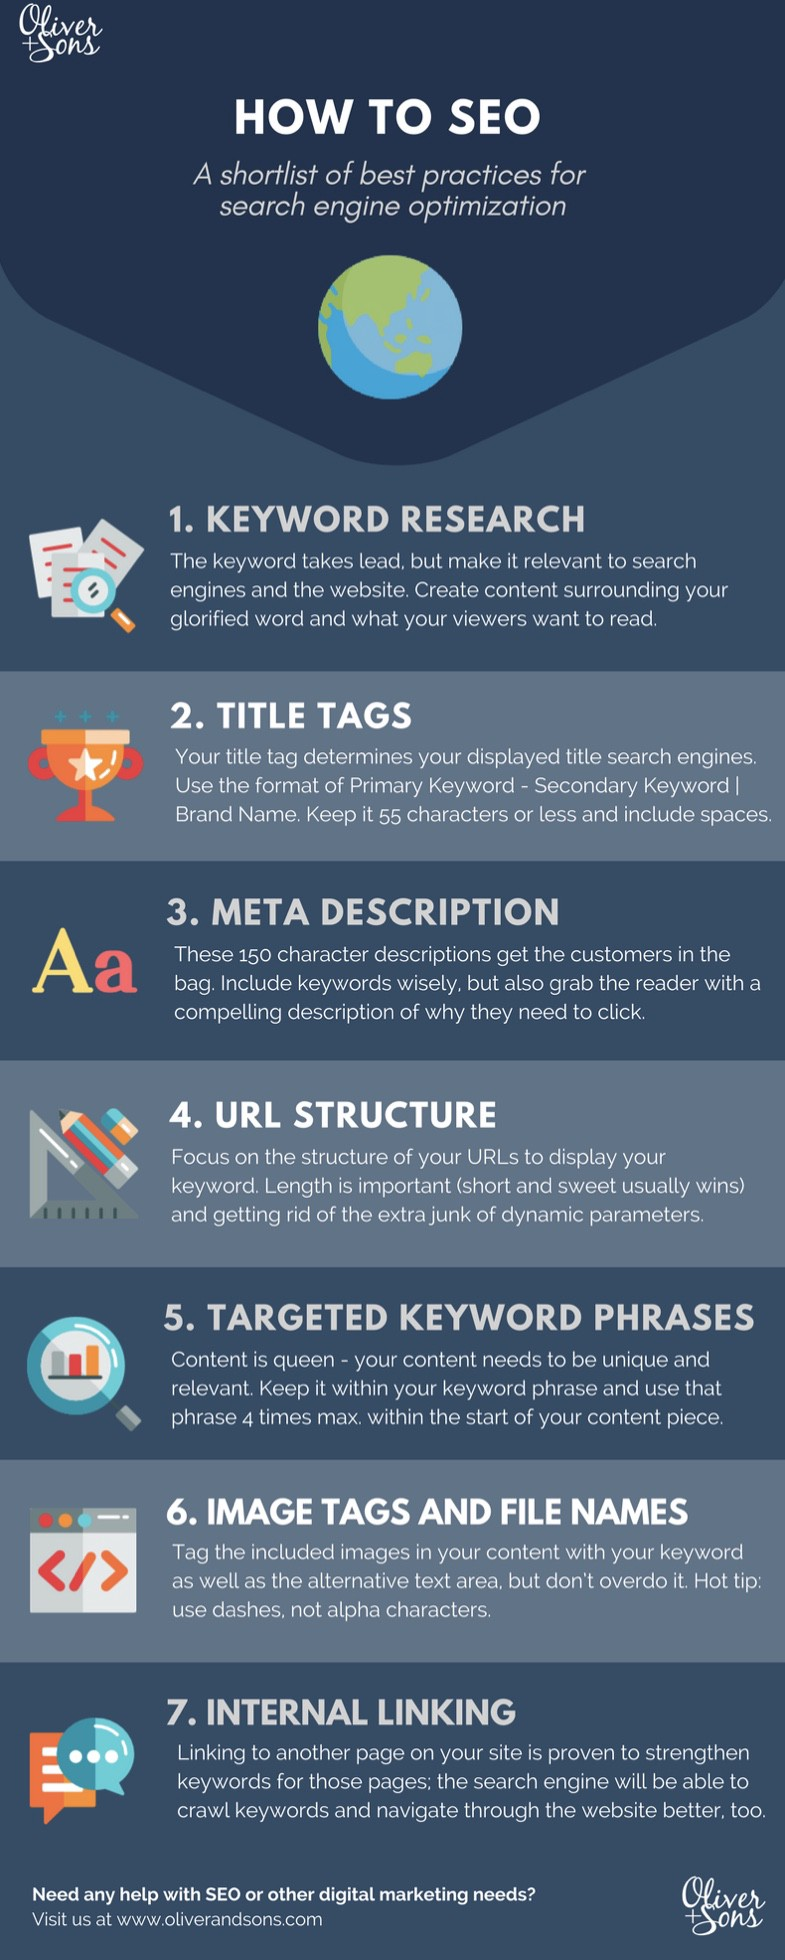 Image result for Search Engine Optimization Content: A Quick Guide on tips for writing an SEO article